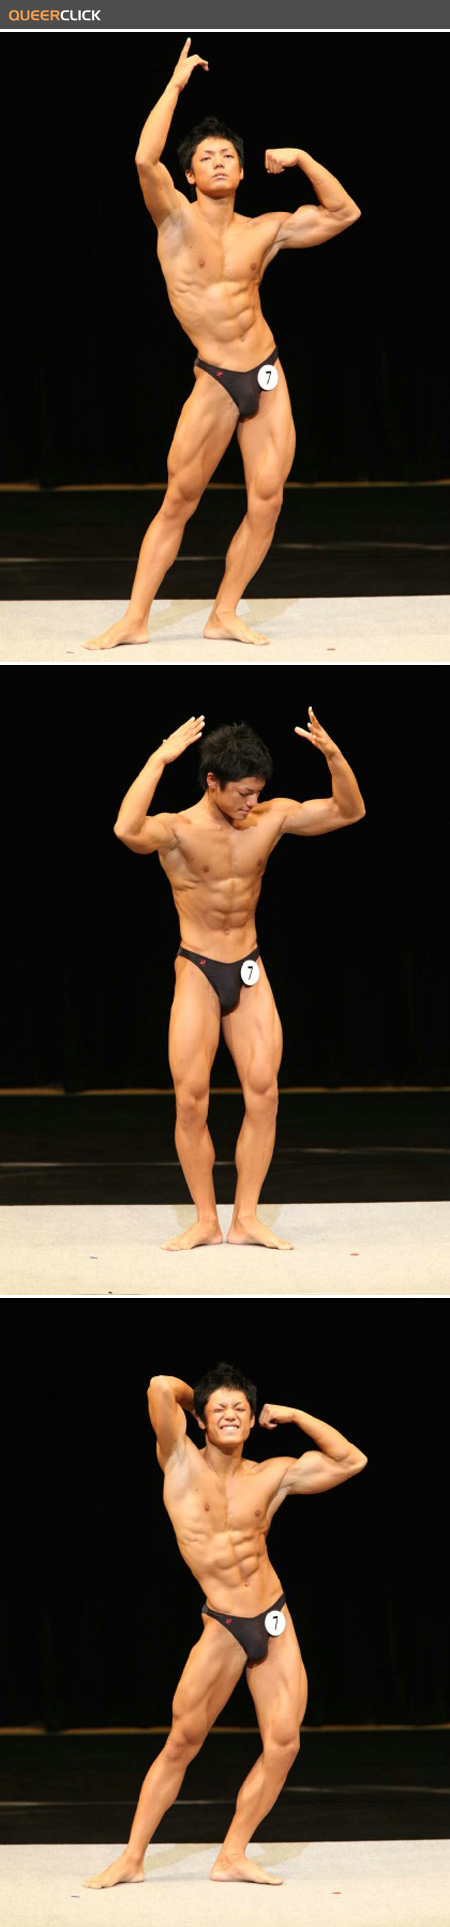 asian_bodybuilder_005.jpg